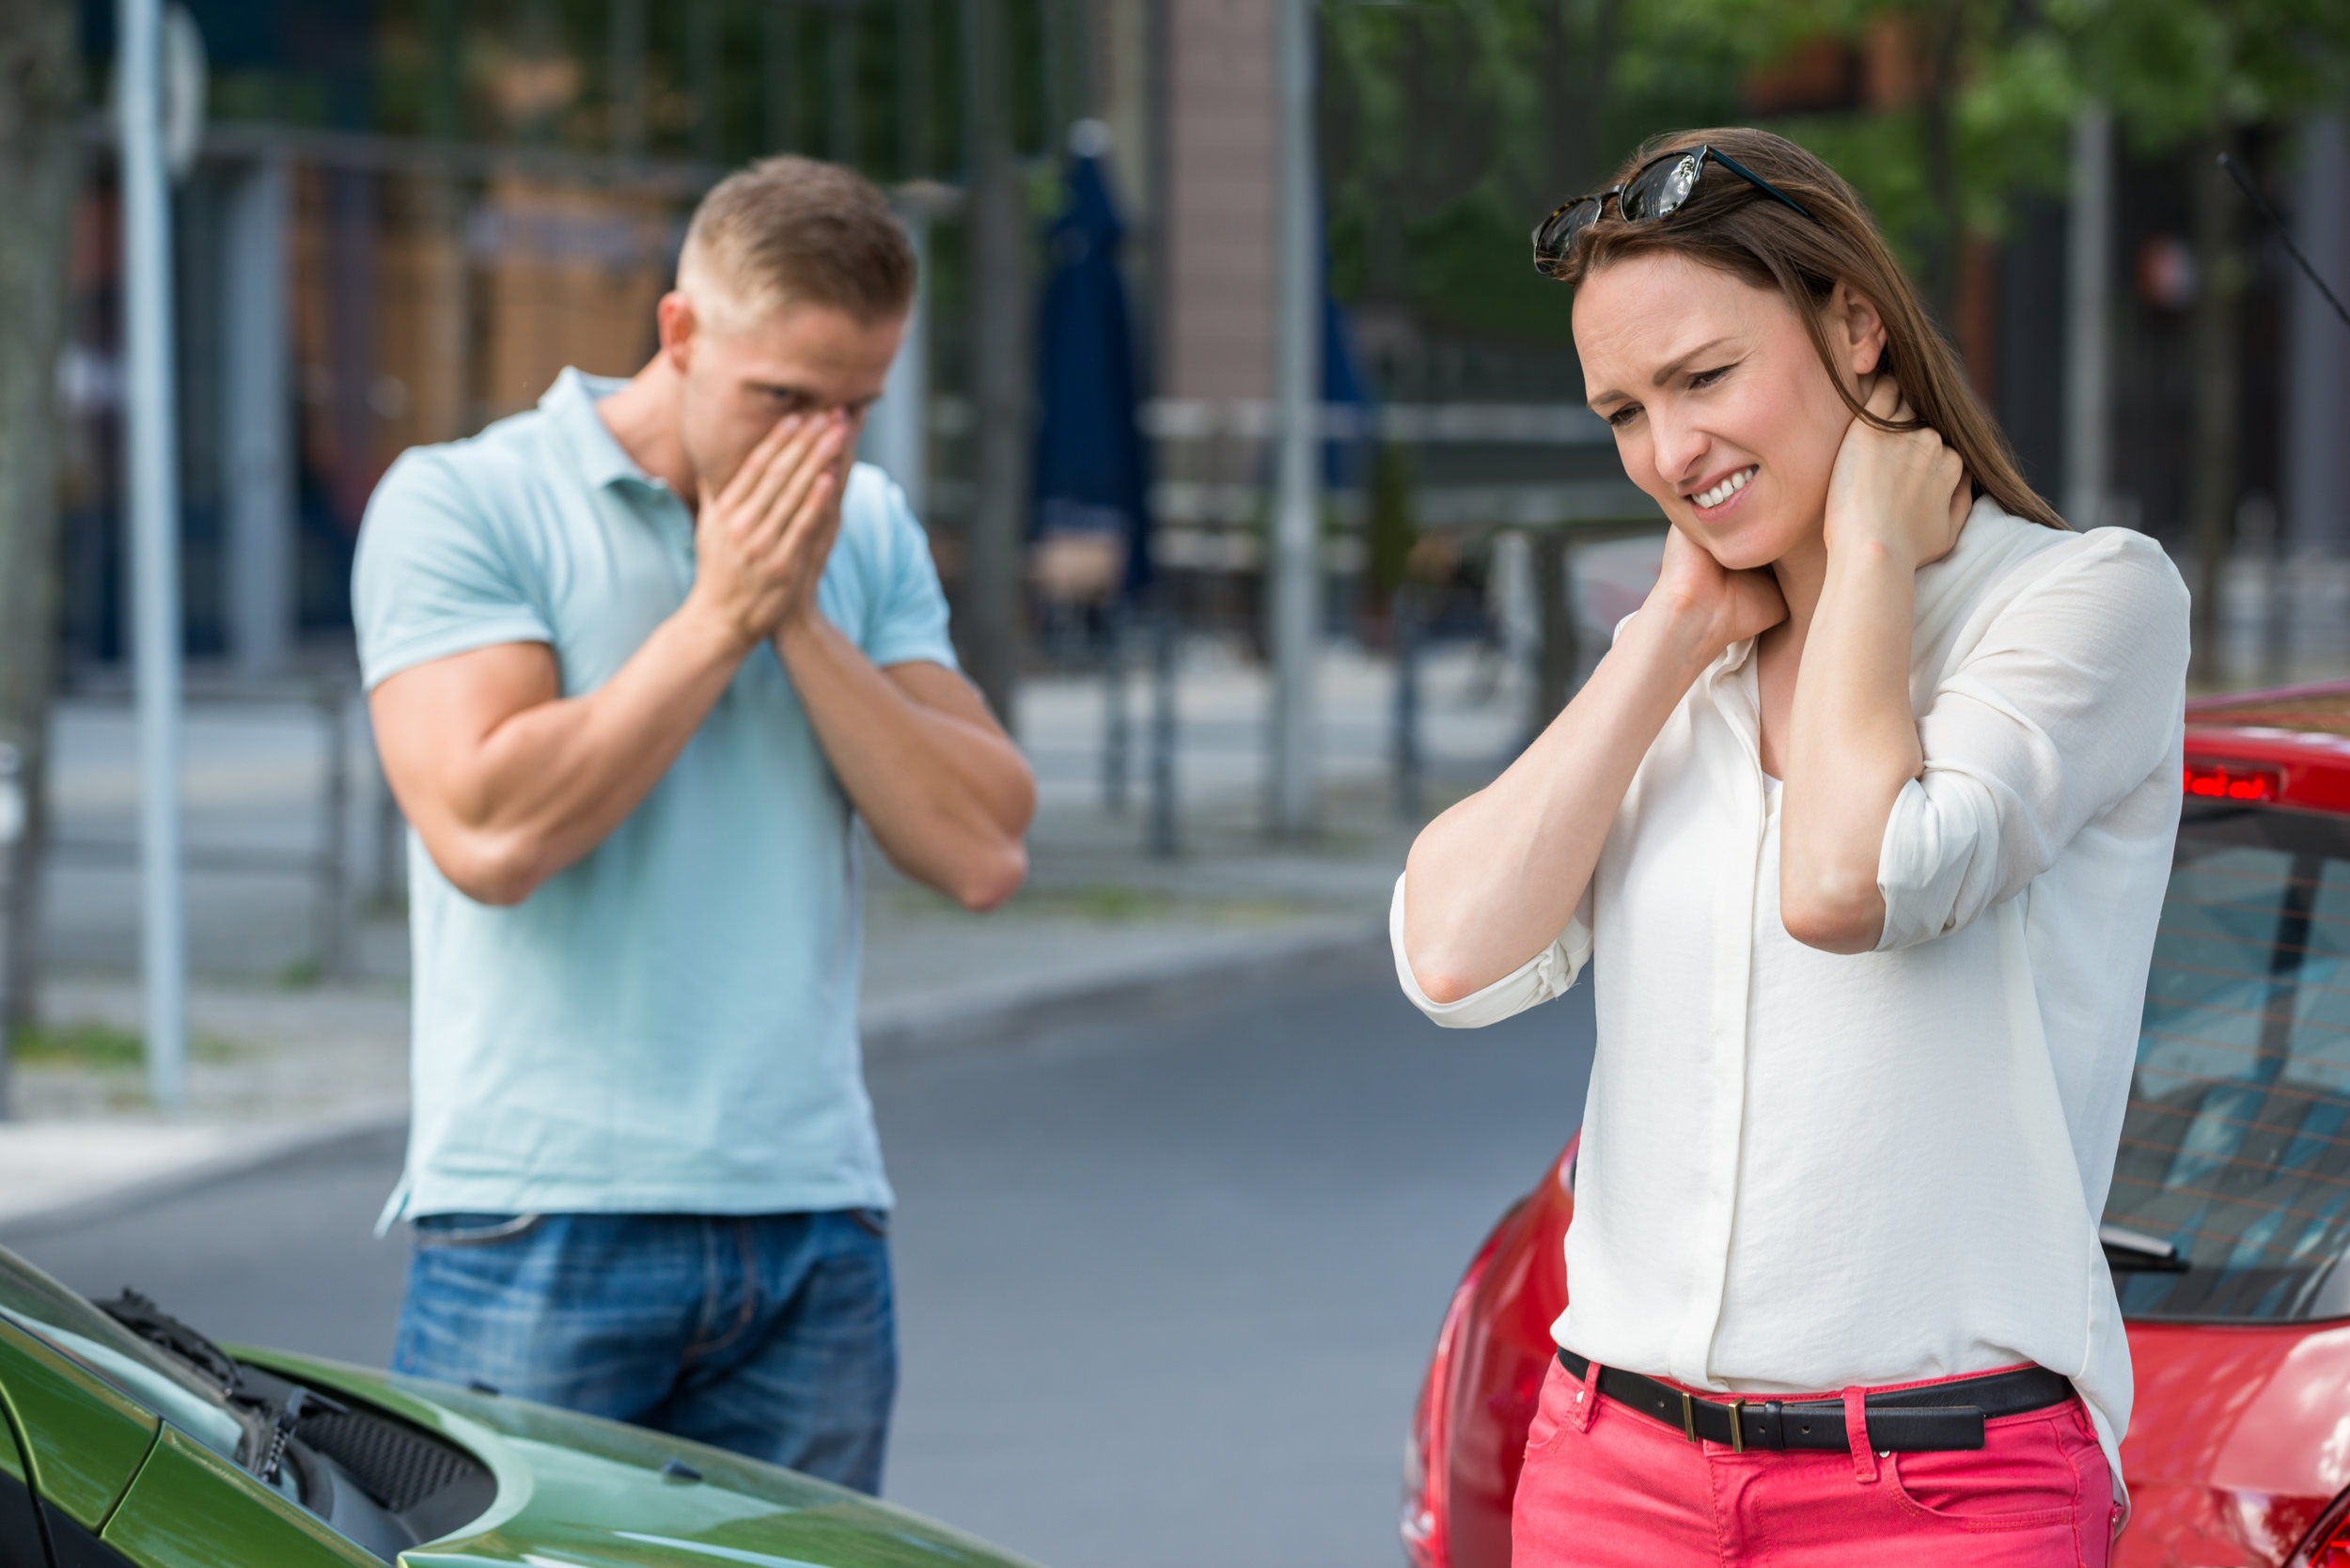 Motor Vehicle Accident/Personal Injury -